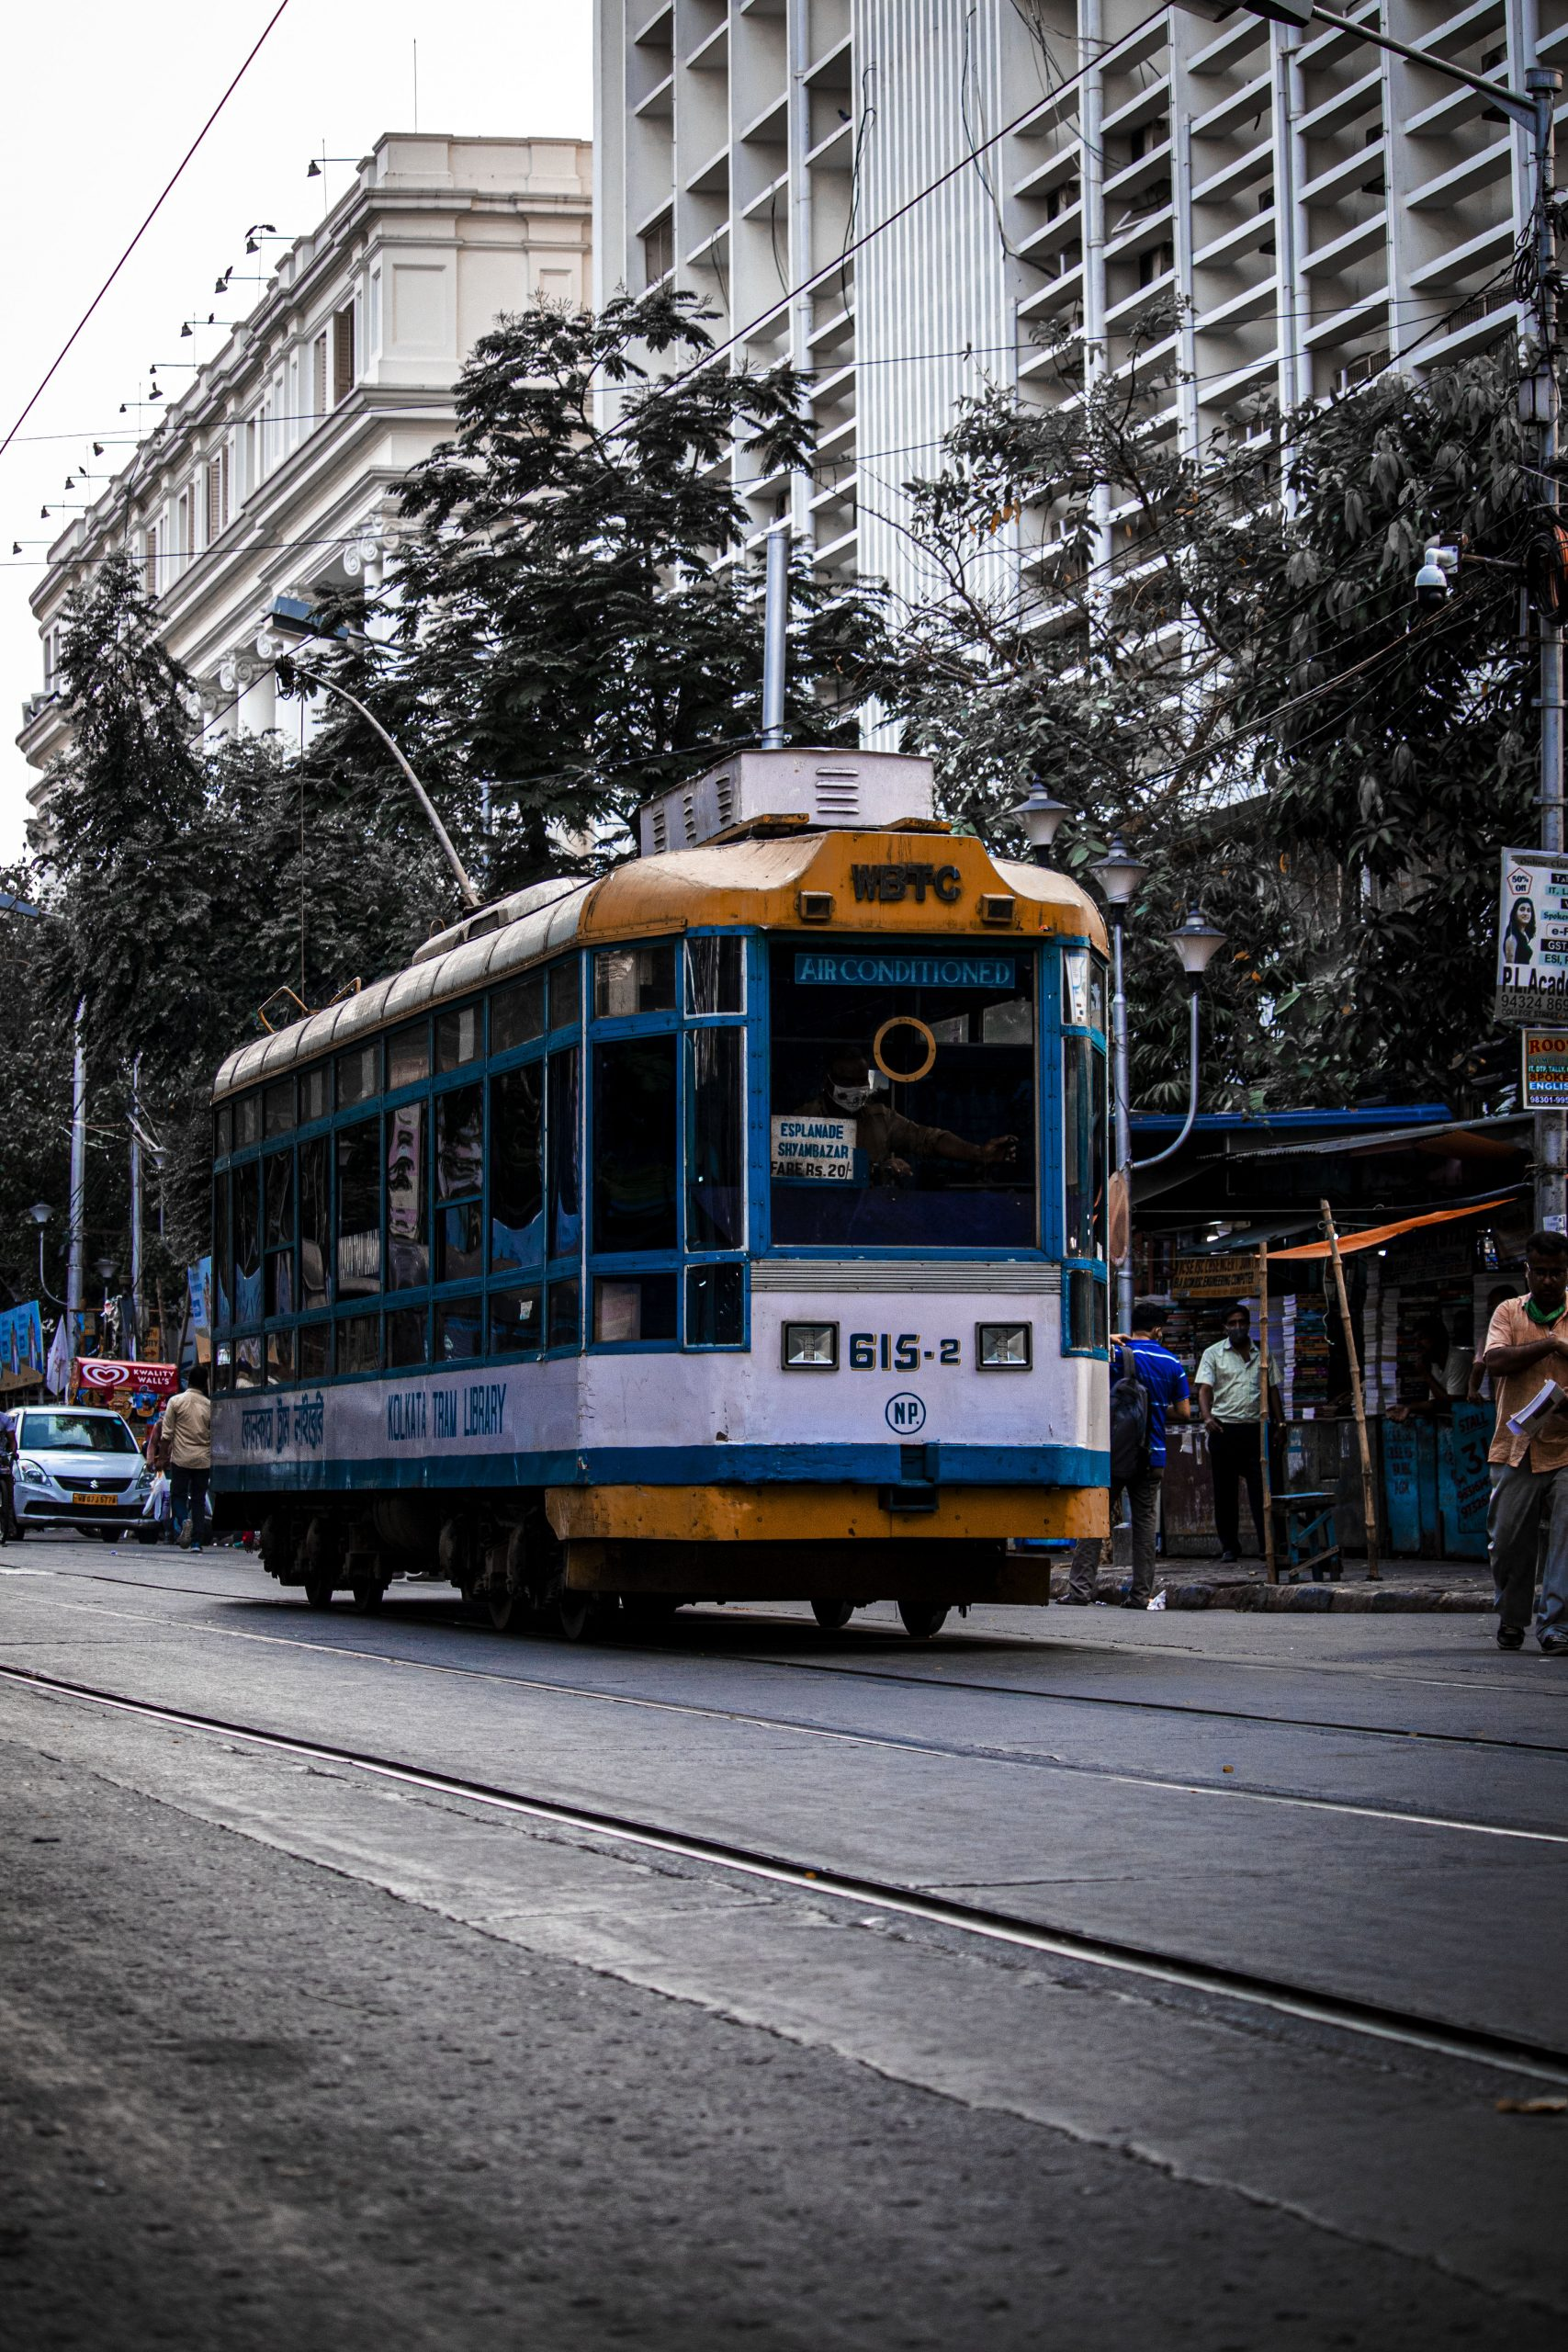 Tram train in Kolkata